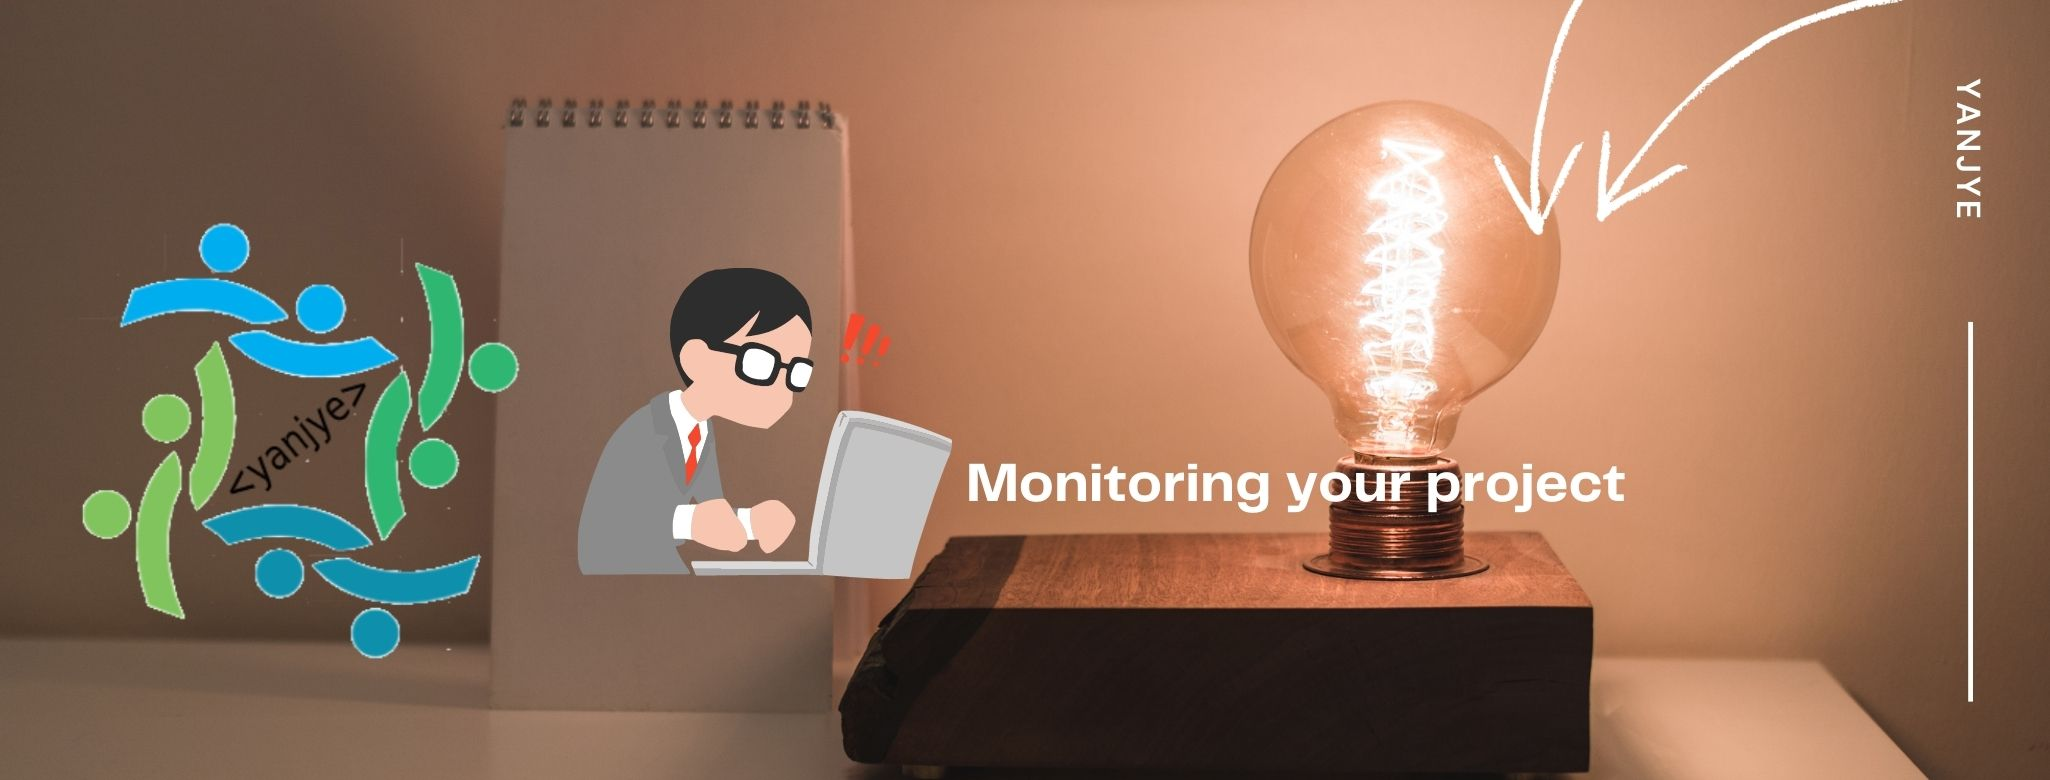 Monitoring your project